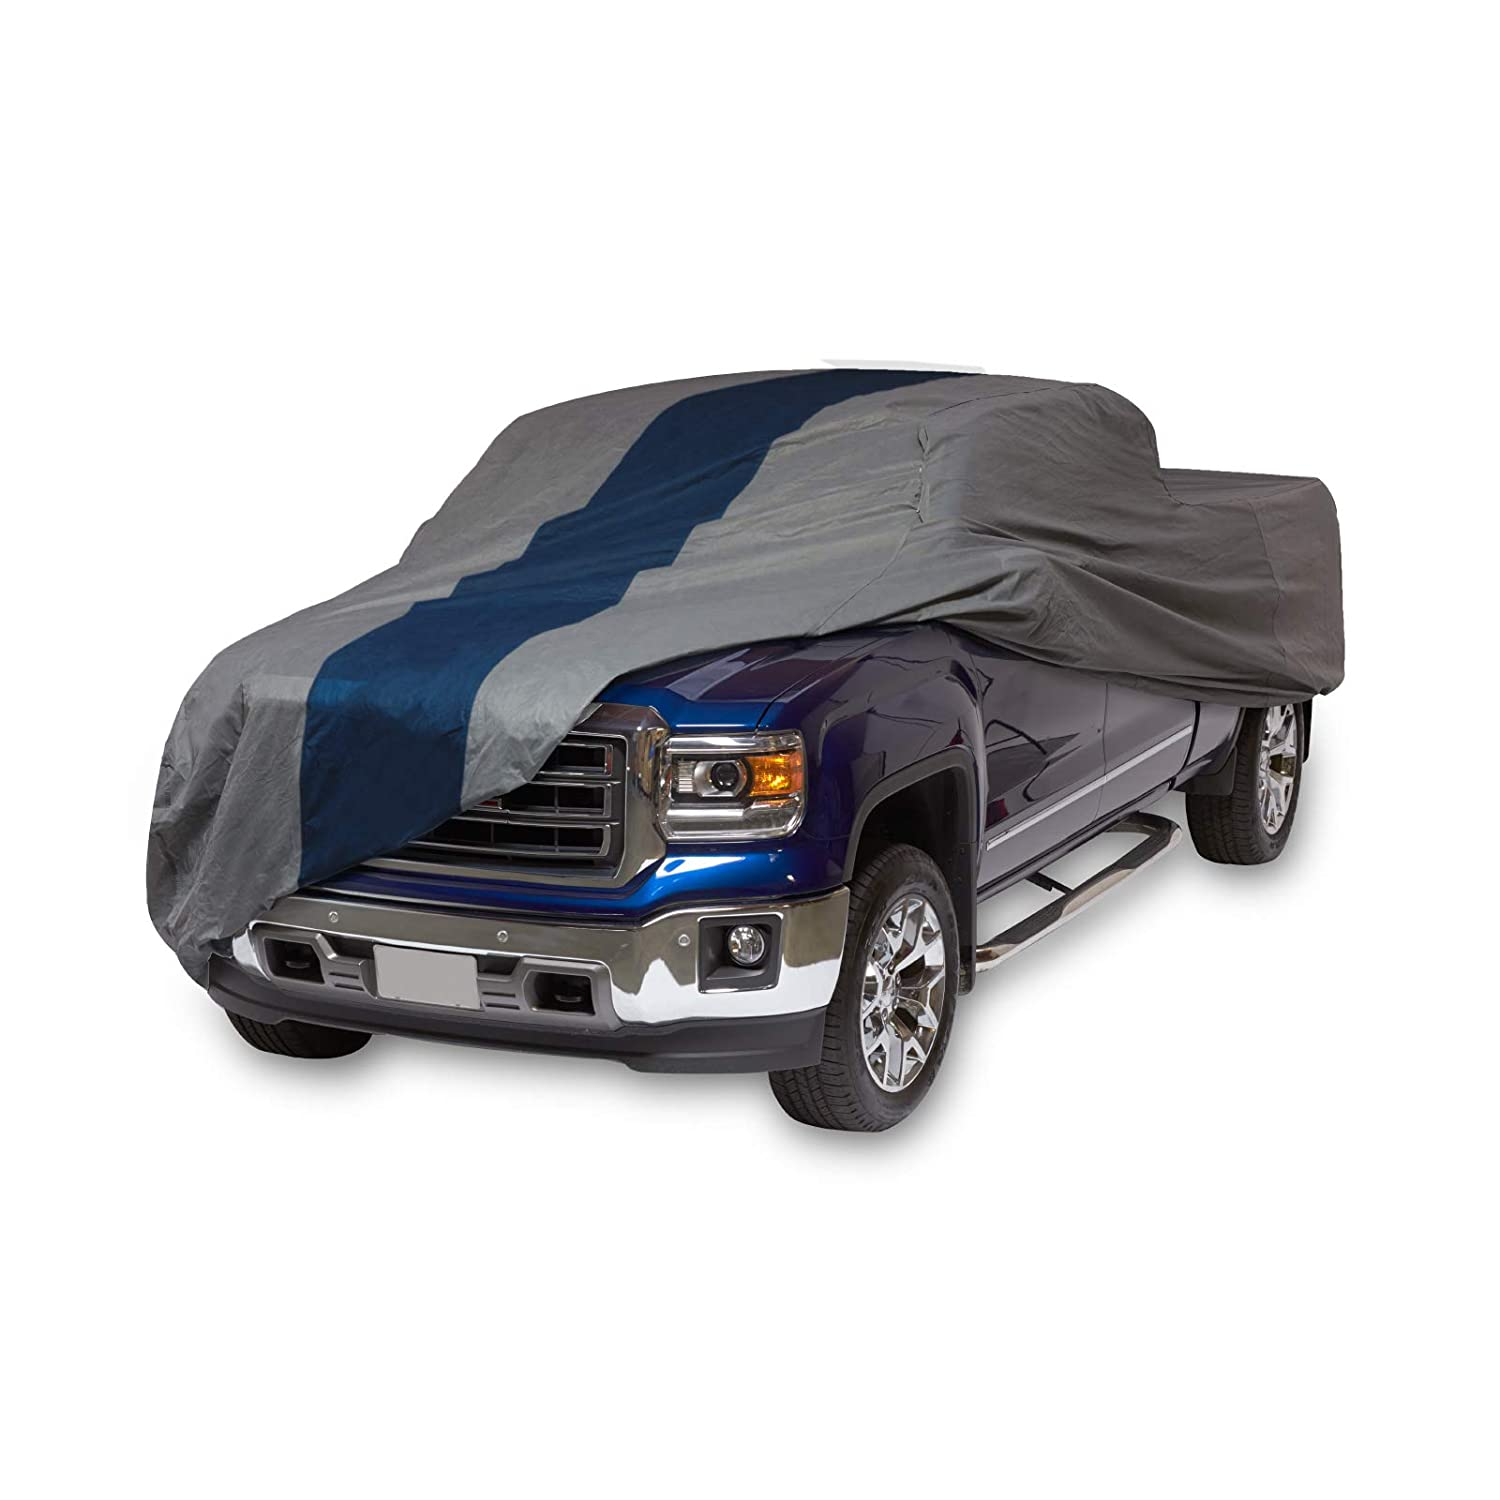 Duck Covers Double Defender Indoor/Outdoor Pickup Truck Cover, 3 Layers, All Weather Protection, Limited 3 Year Warranty, Fits Regular Cab Trucks up to 17 ft. 5 in. A2T210